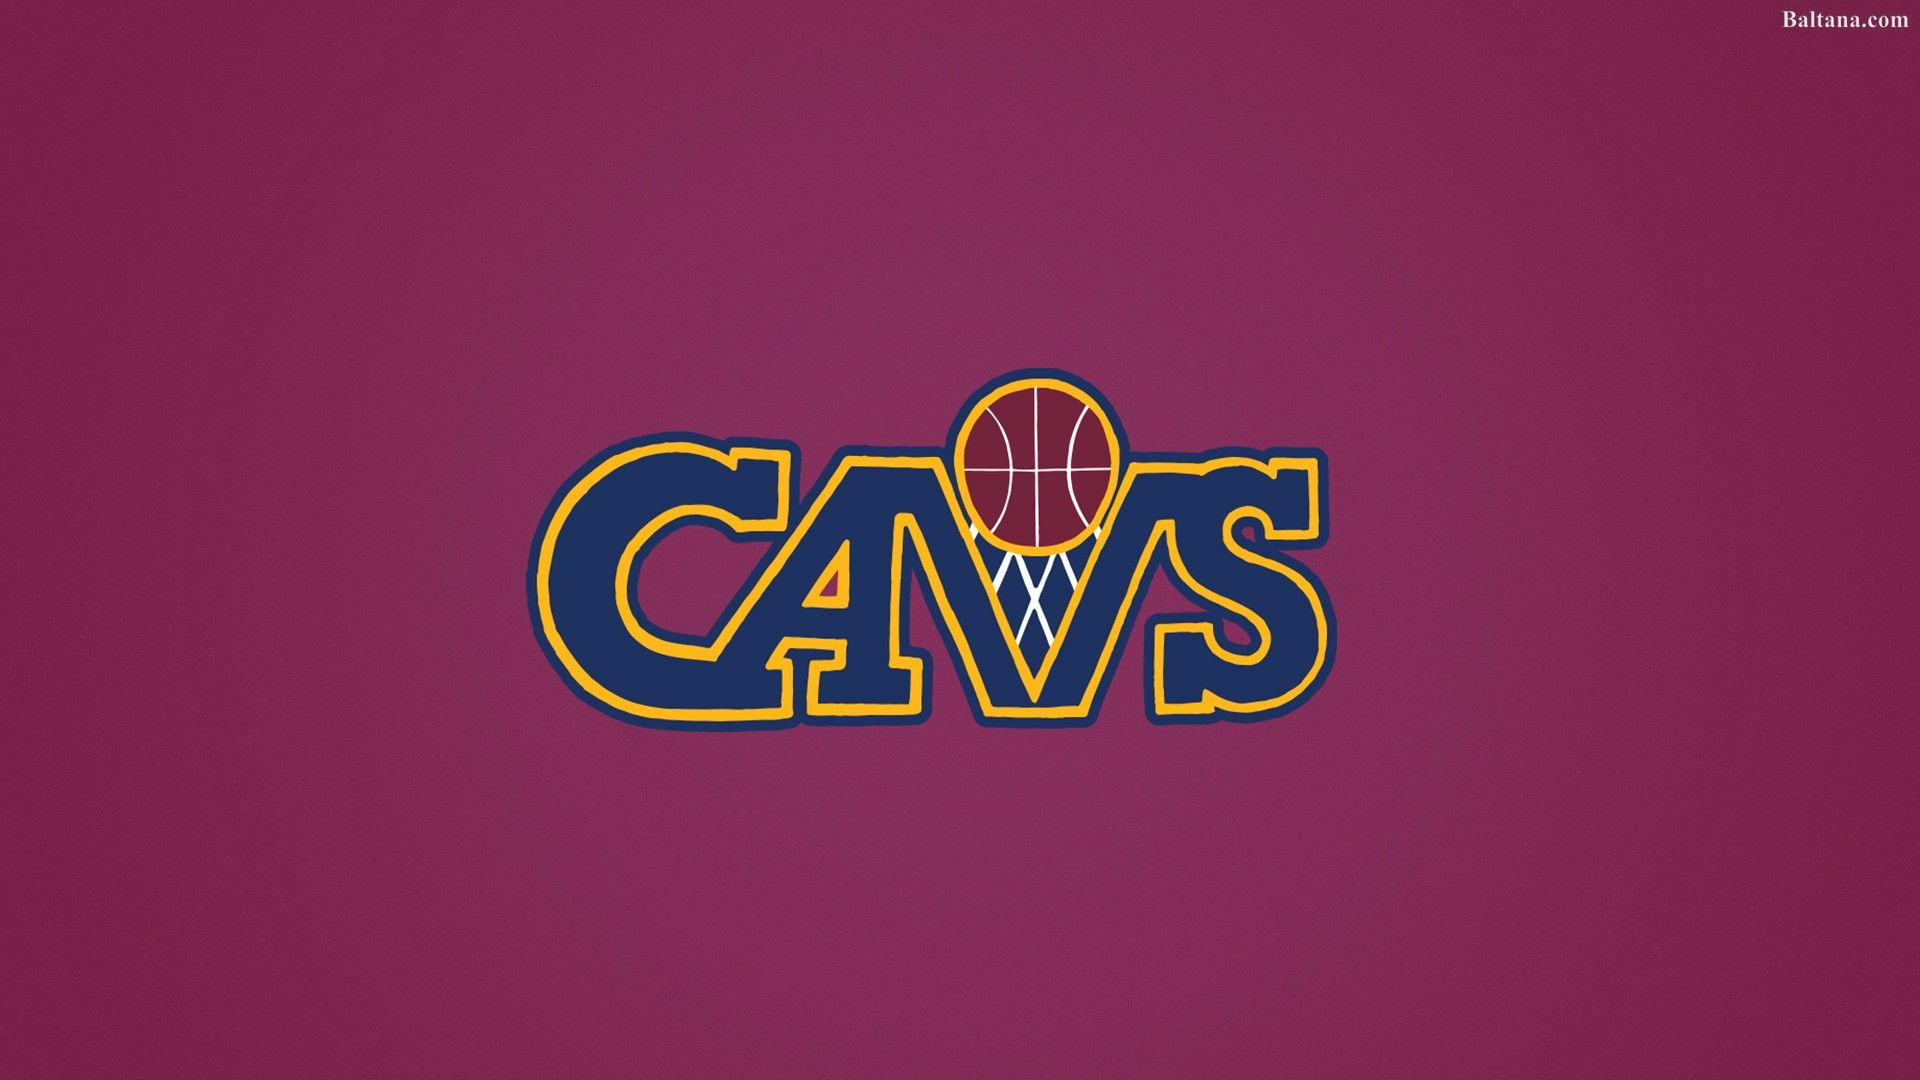 Cleveland Cavaliers Wallpapers - Top